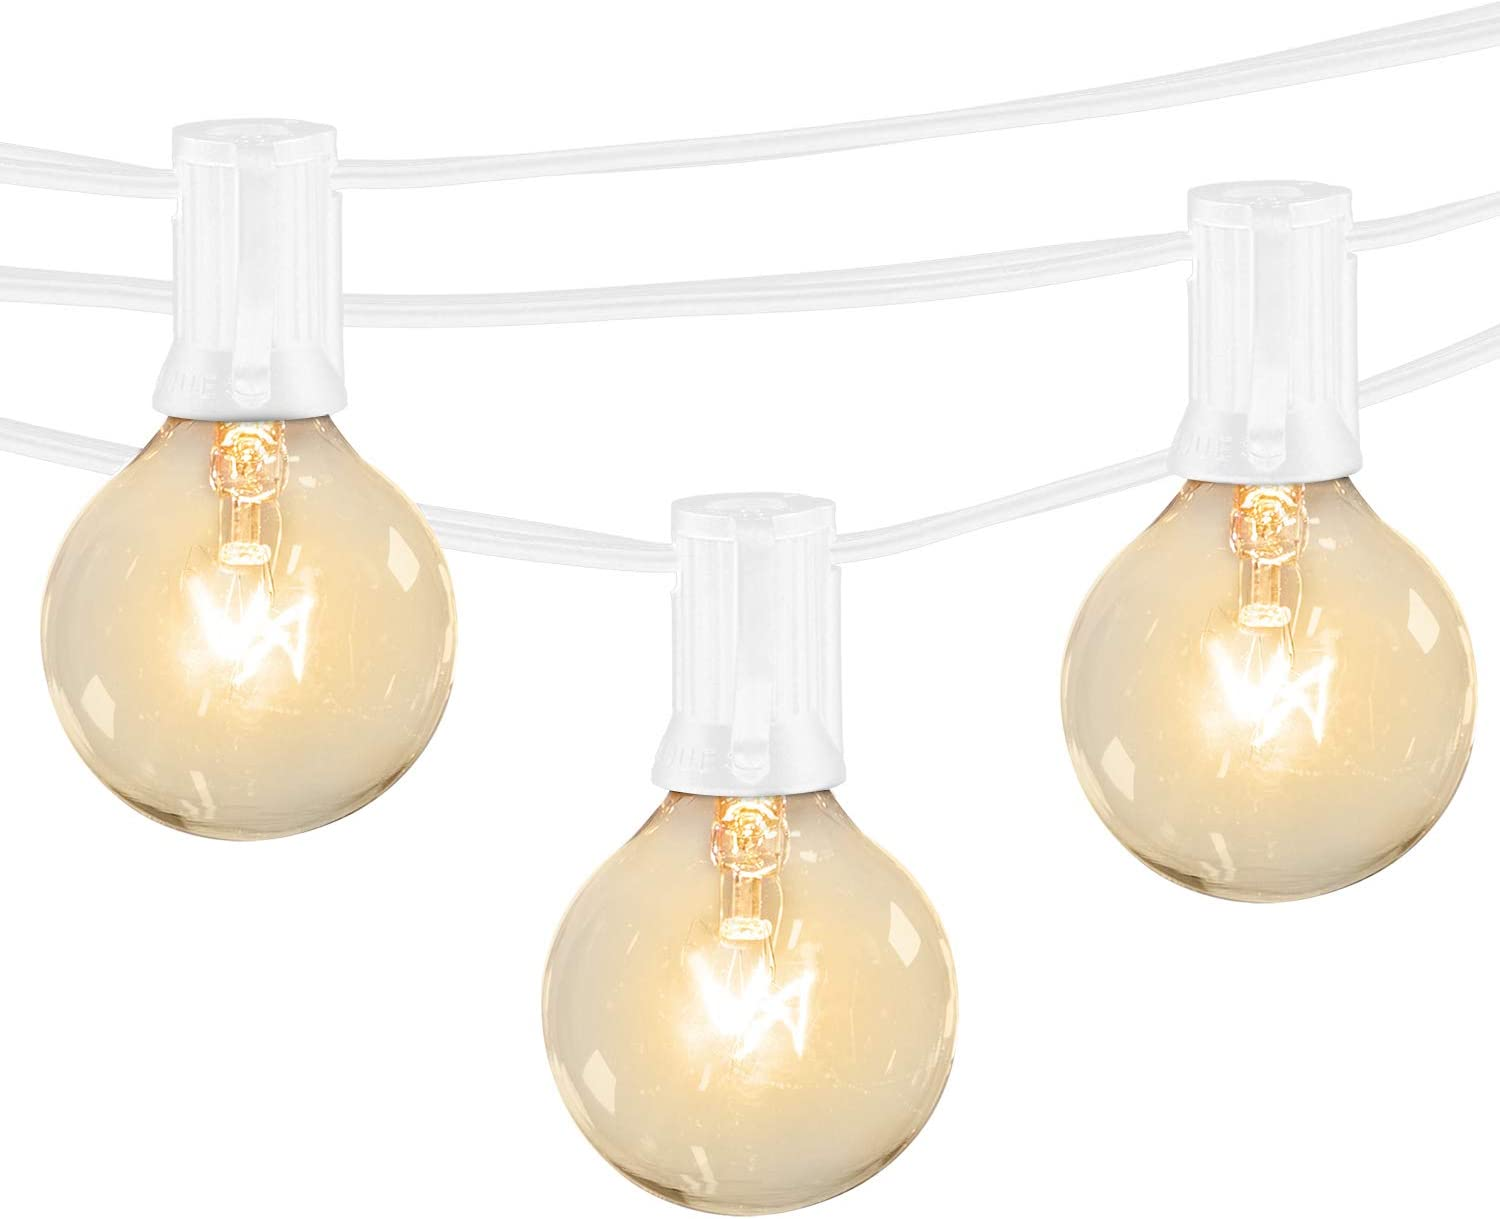 Waterpoof Shockproof Party Outdoor Light String 15 x 1W Warm White Vintage Edison Bulbs Patio Lights Banord 50FT Solar LED String Lights